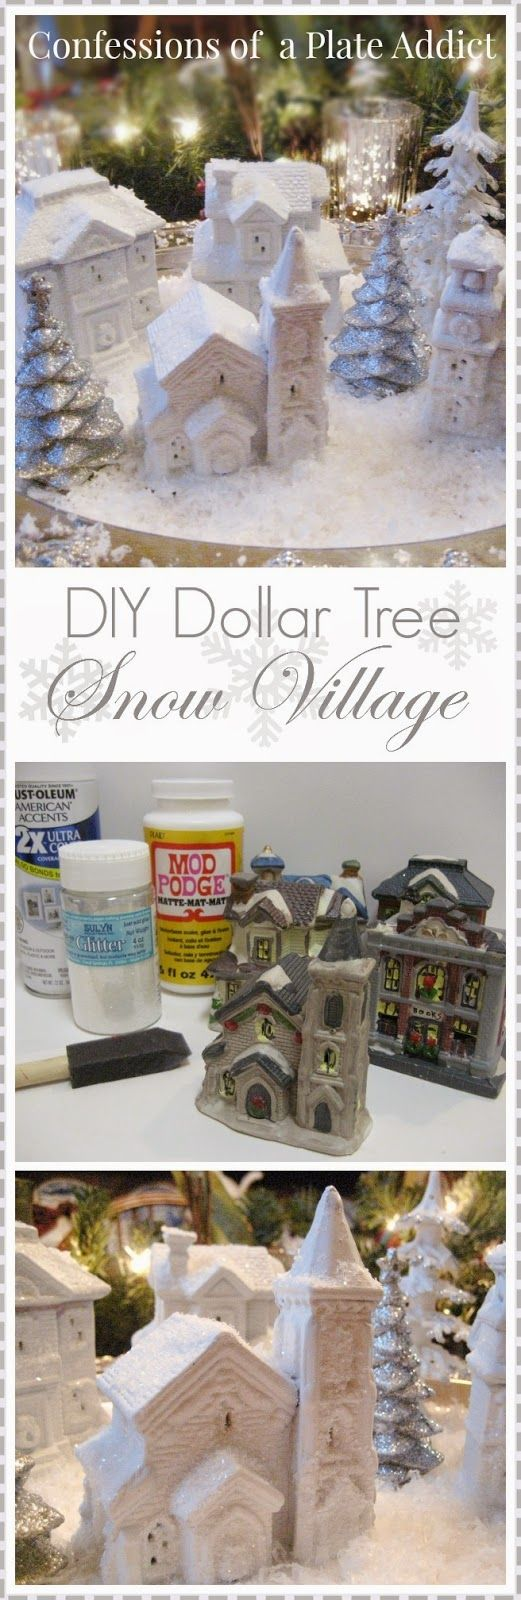 CONFESSIONS OF A PLATE ADDICT Last Minute Christmas...DIY Dollar Tree Snow Village